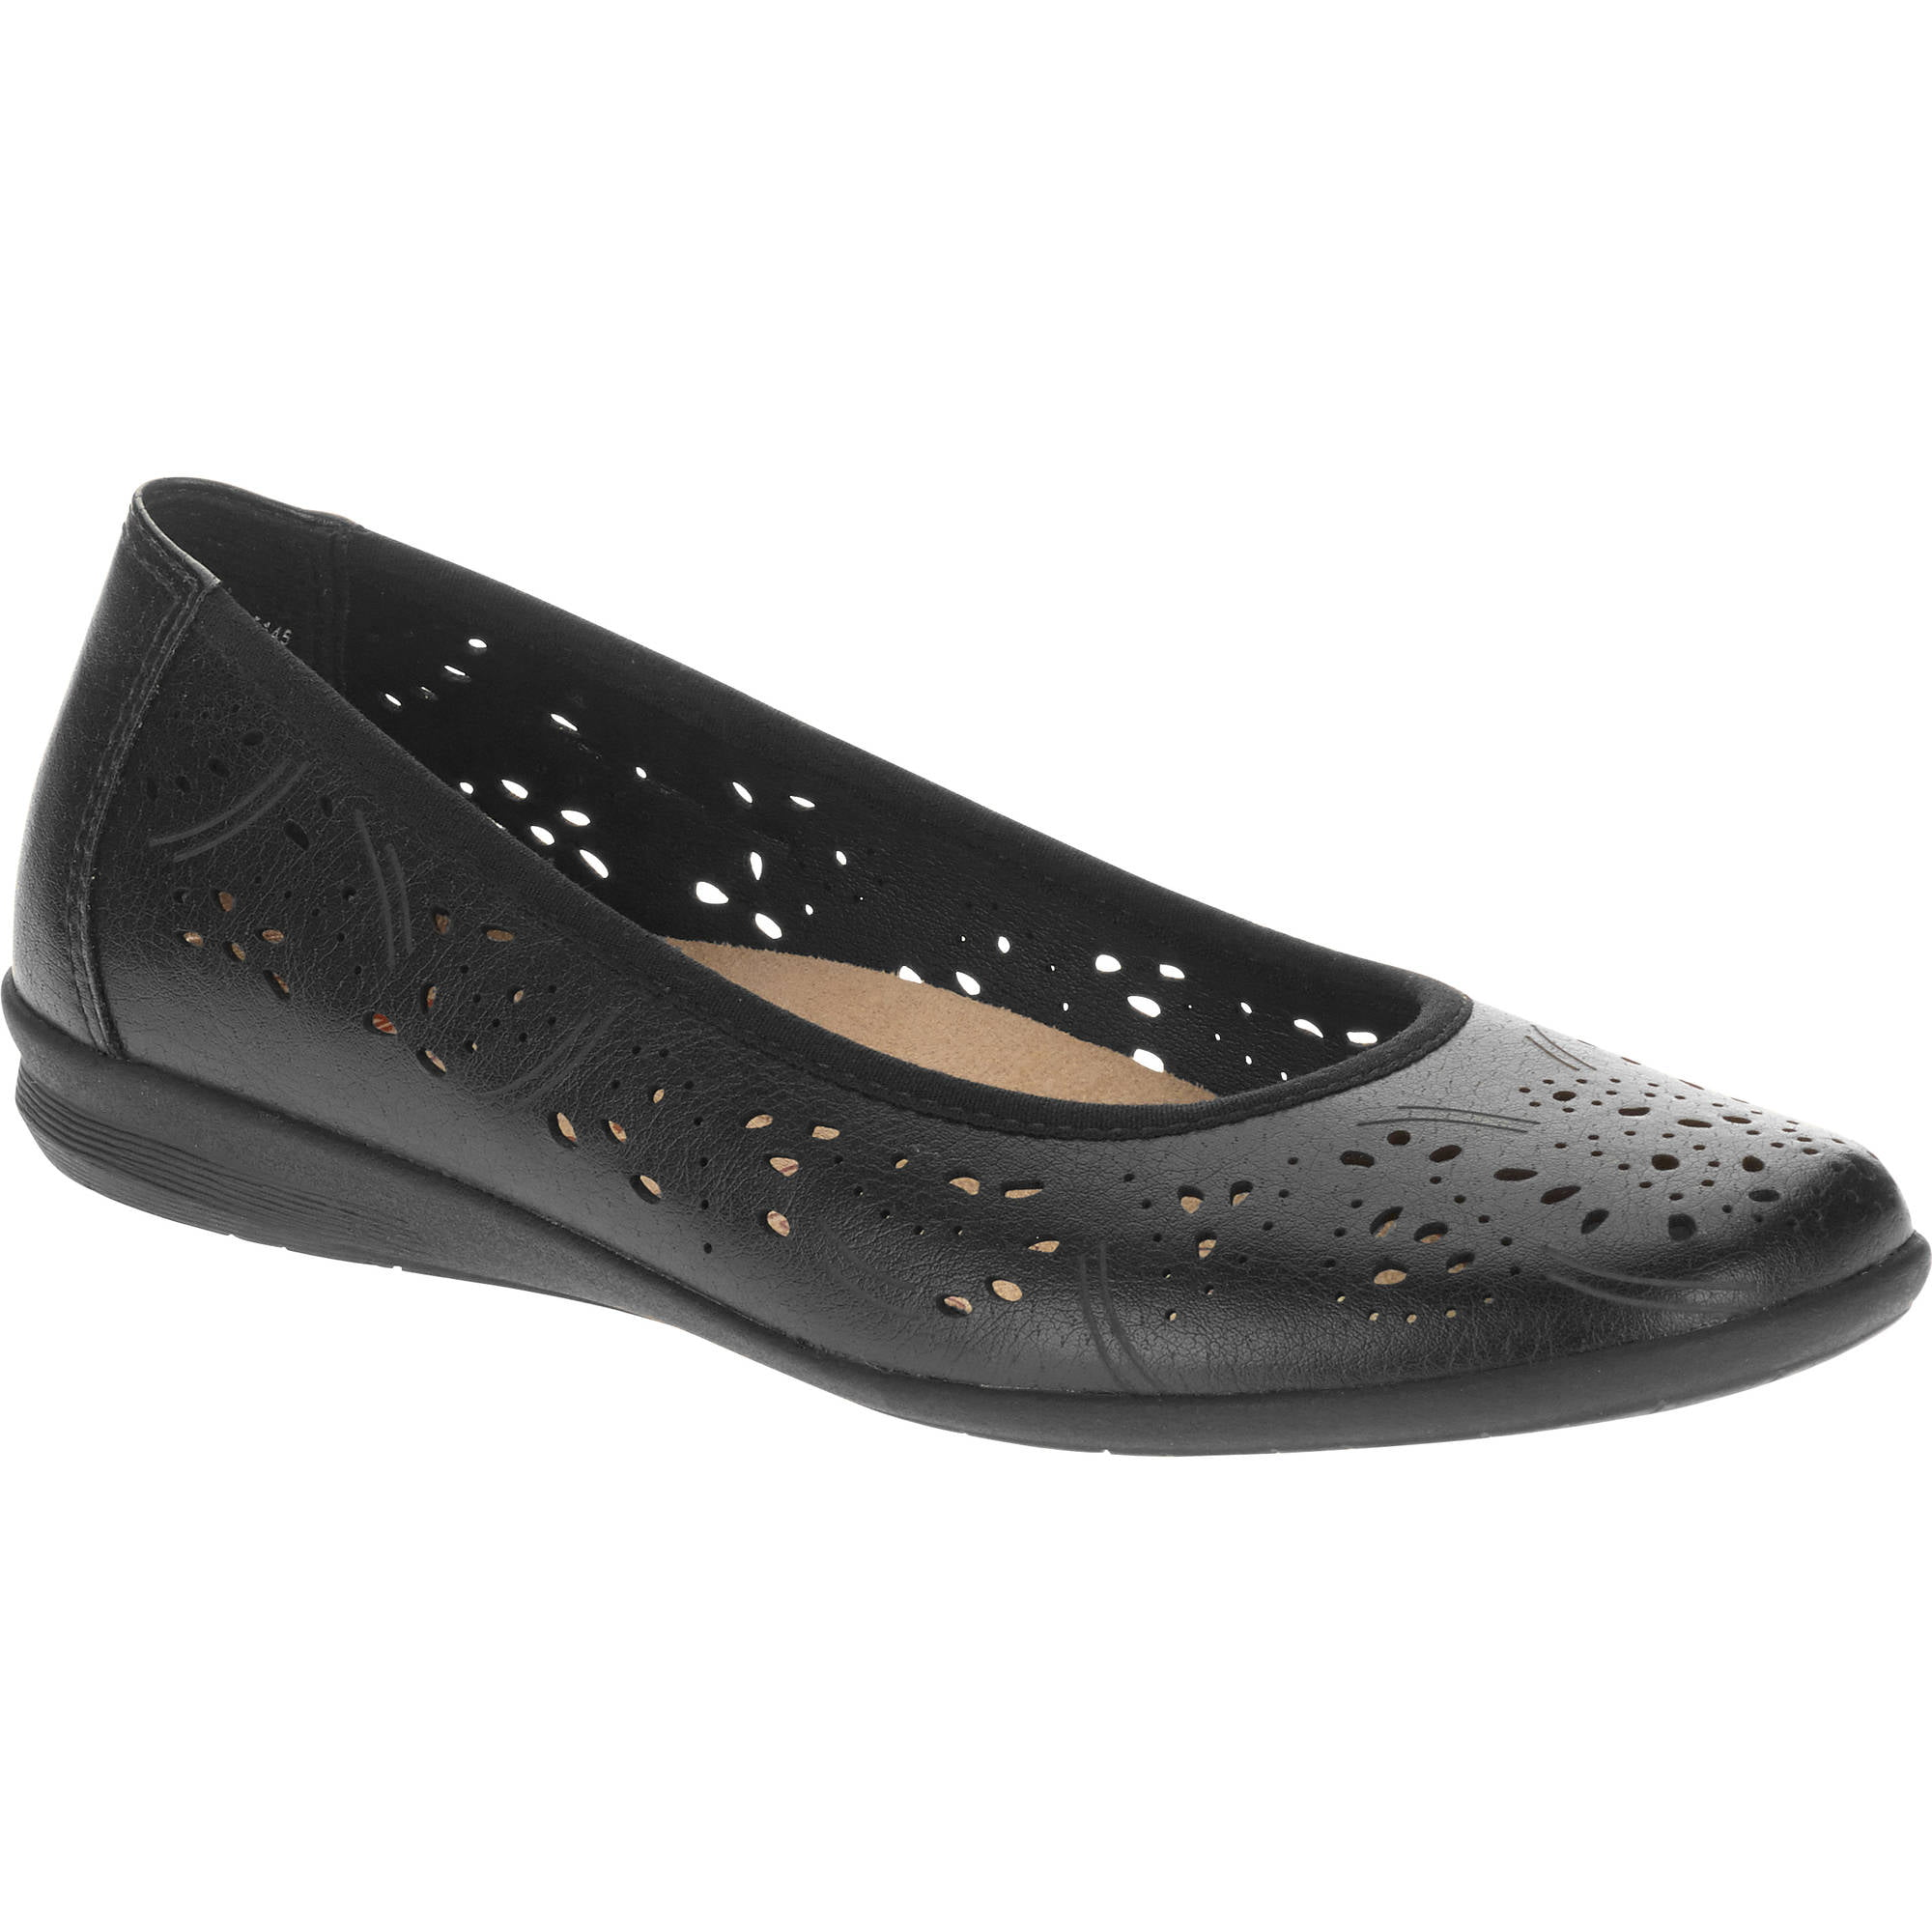 Earth Spirit Women's Fashion Ballet Flat by